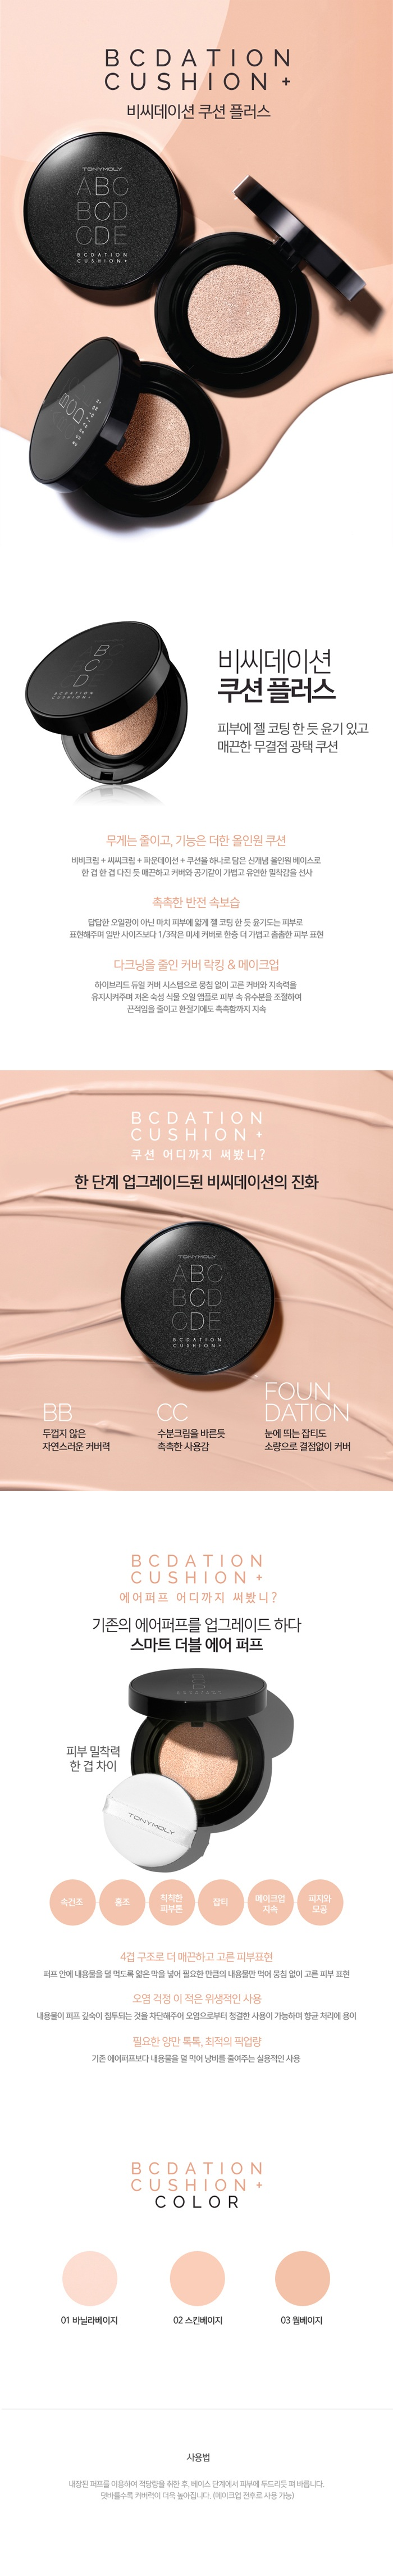 Tony Moly BCDation Cushion Plus Refill korean cosmetic makeup product online shop malaysia spain portugal1